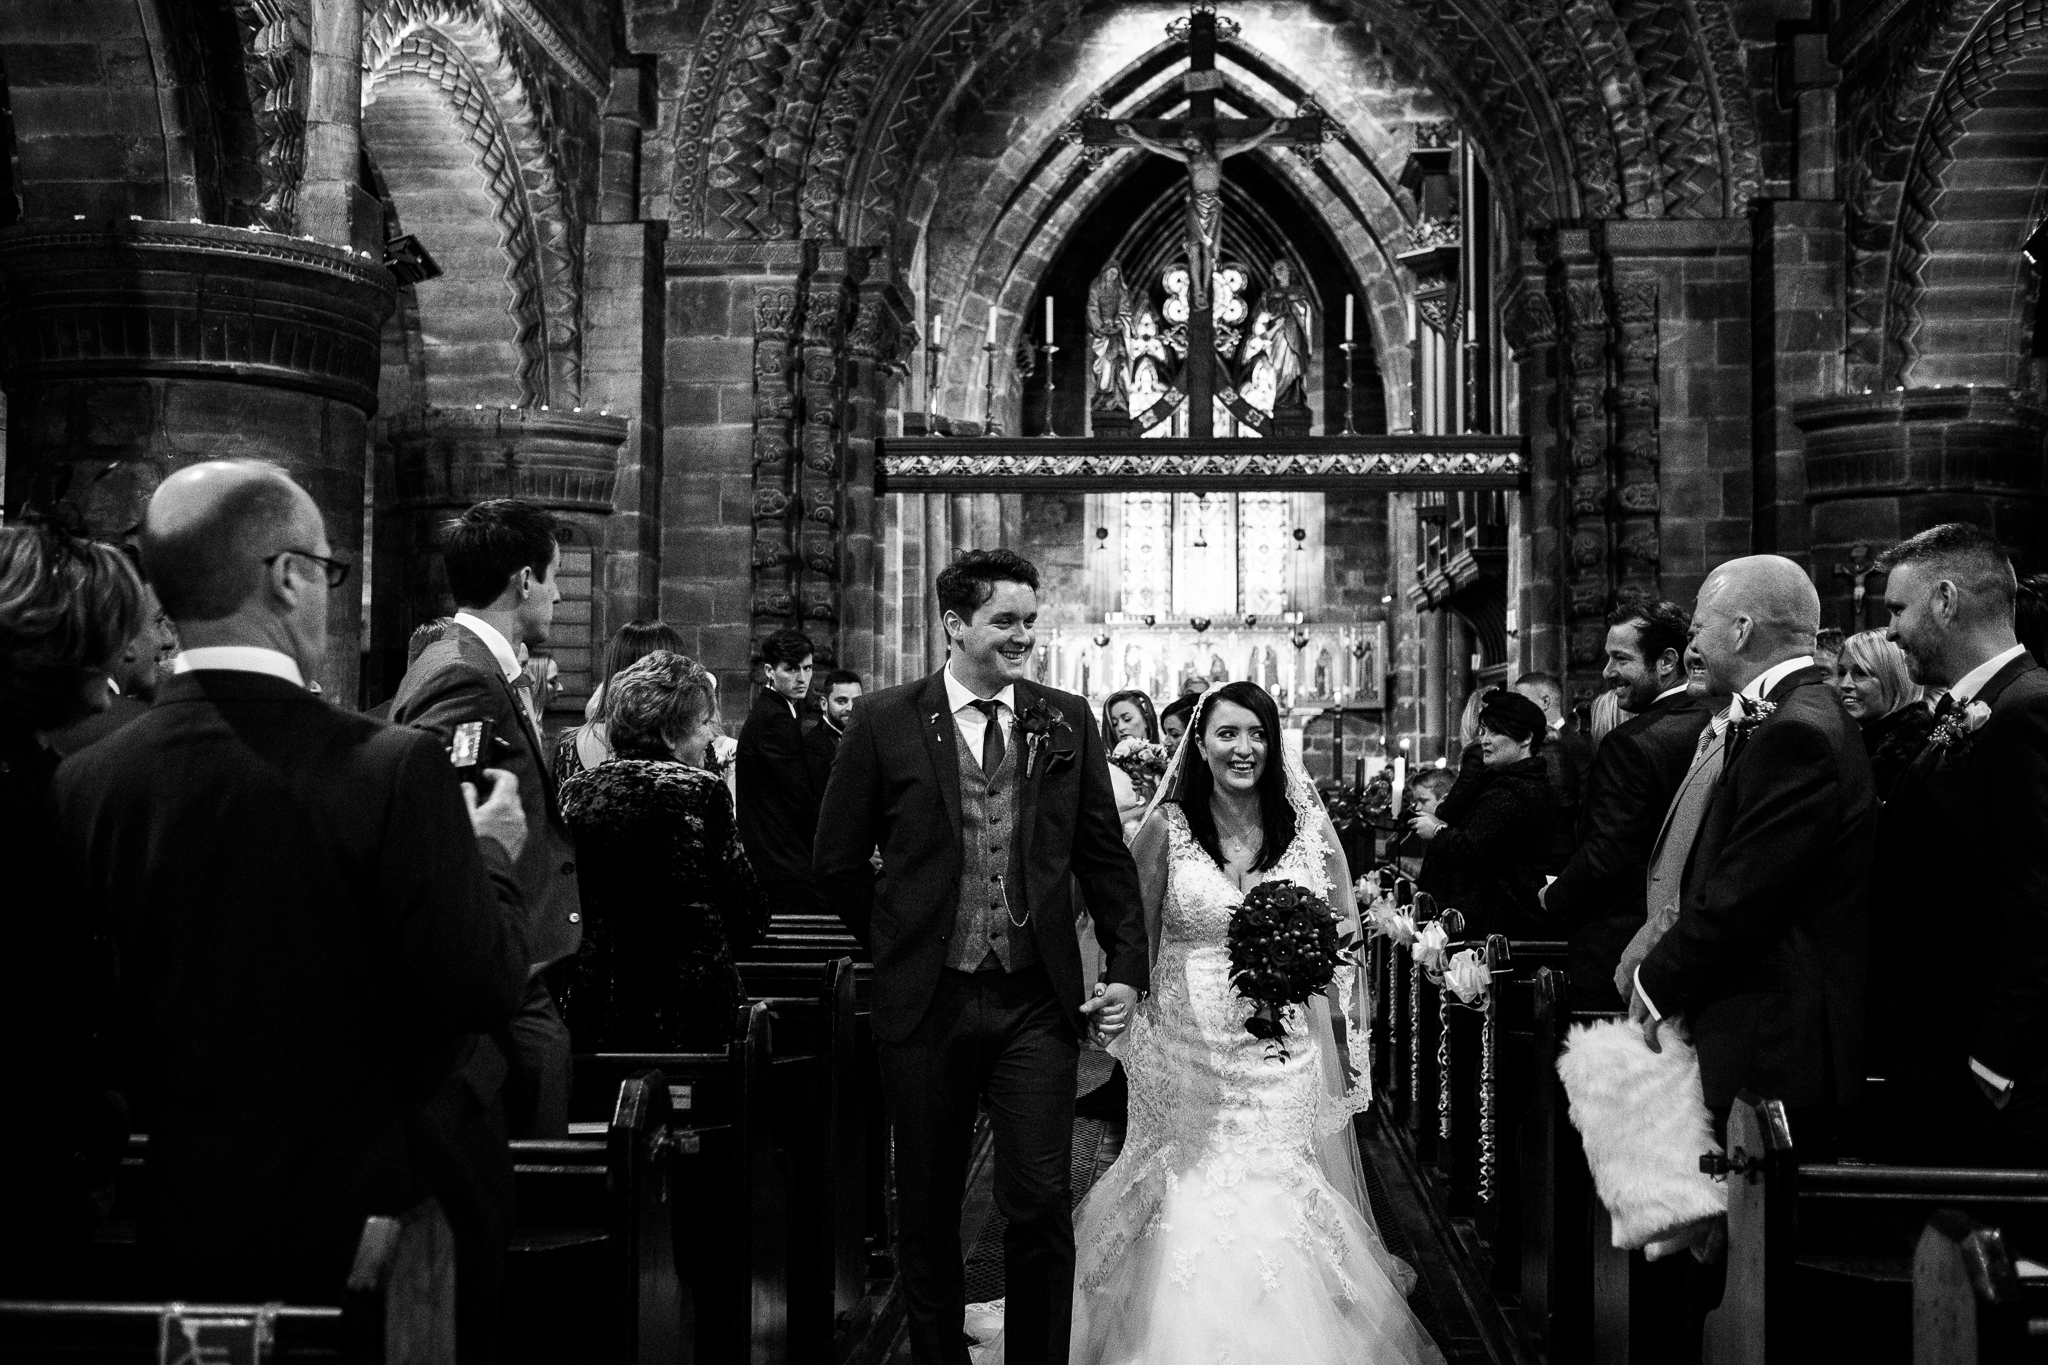 Winter Wedding Christmas Wedding Photography Stafford, Staffordshire Saint Chad Weston Hall Documentary Photographer - Jenny Harper-28.jpg